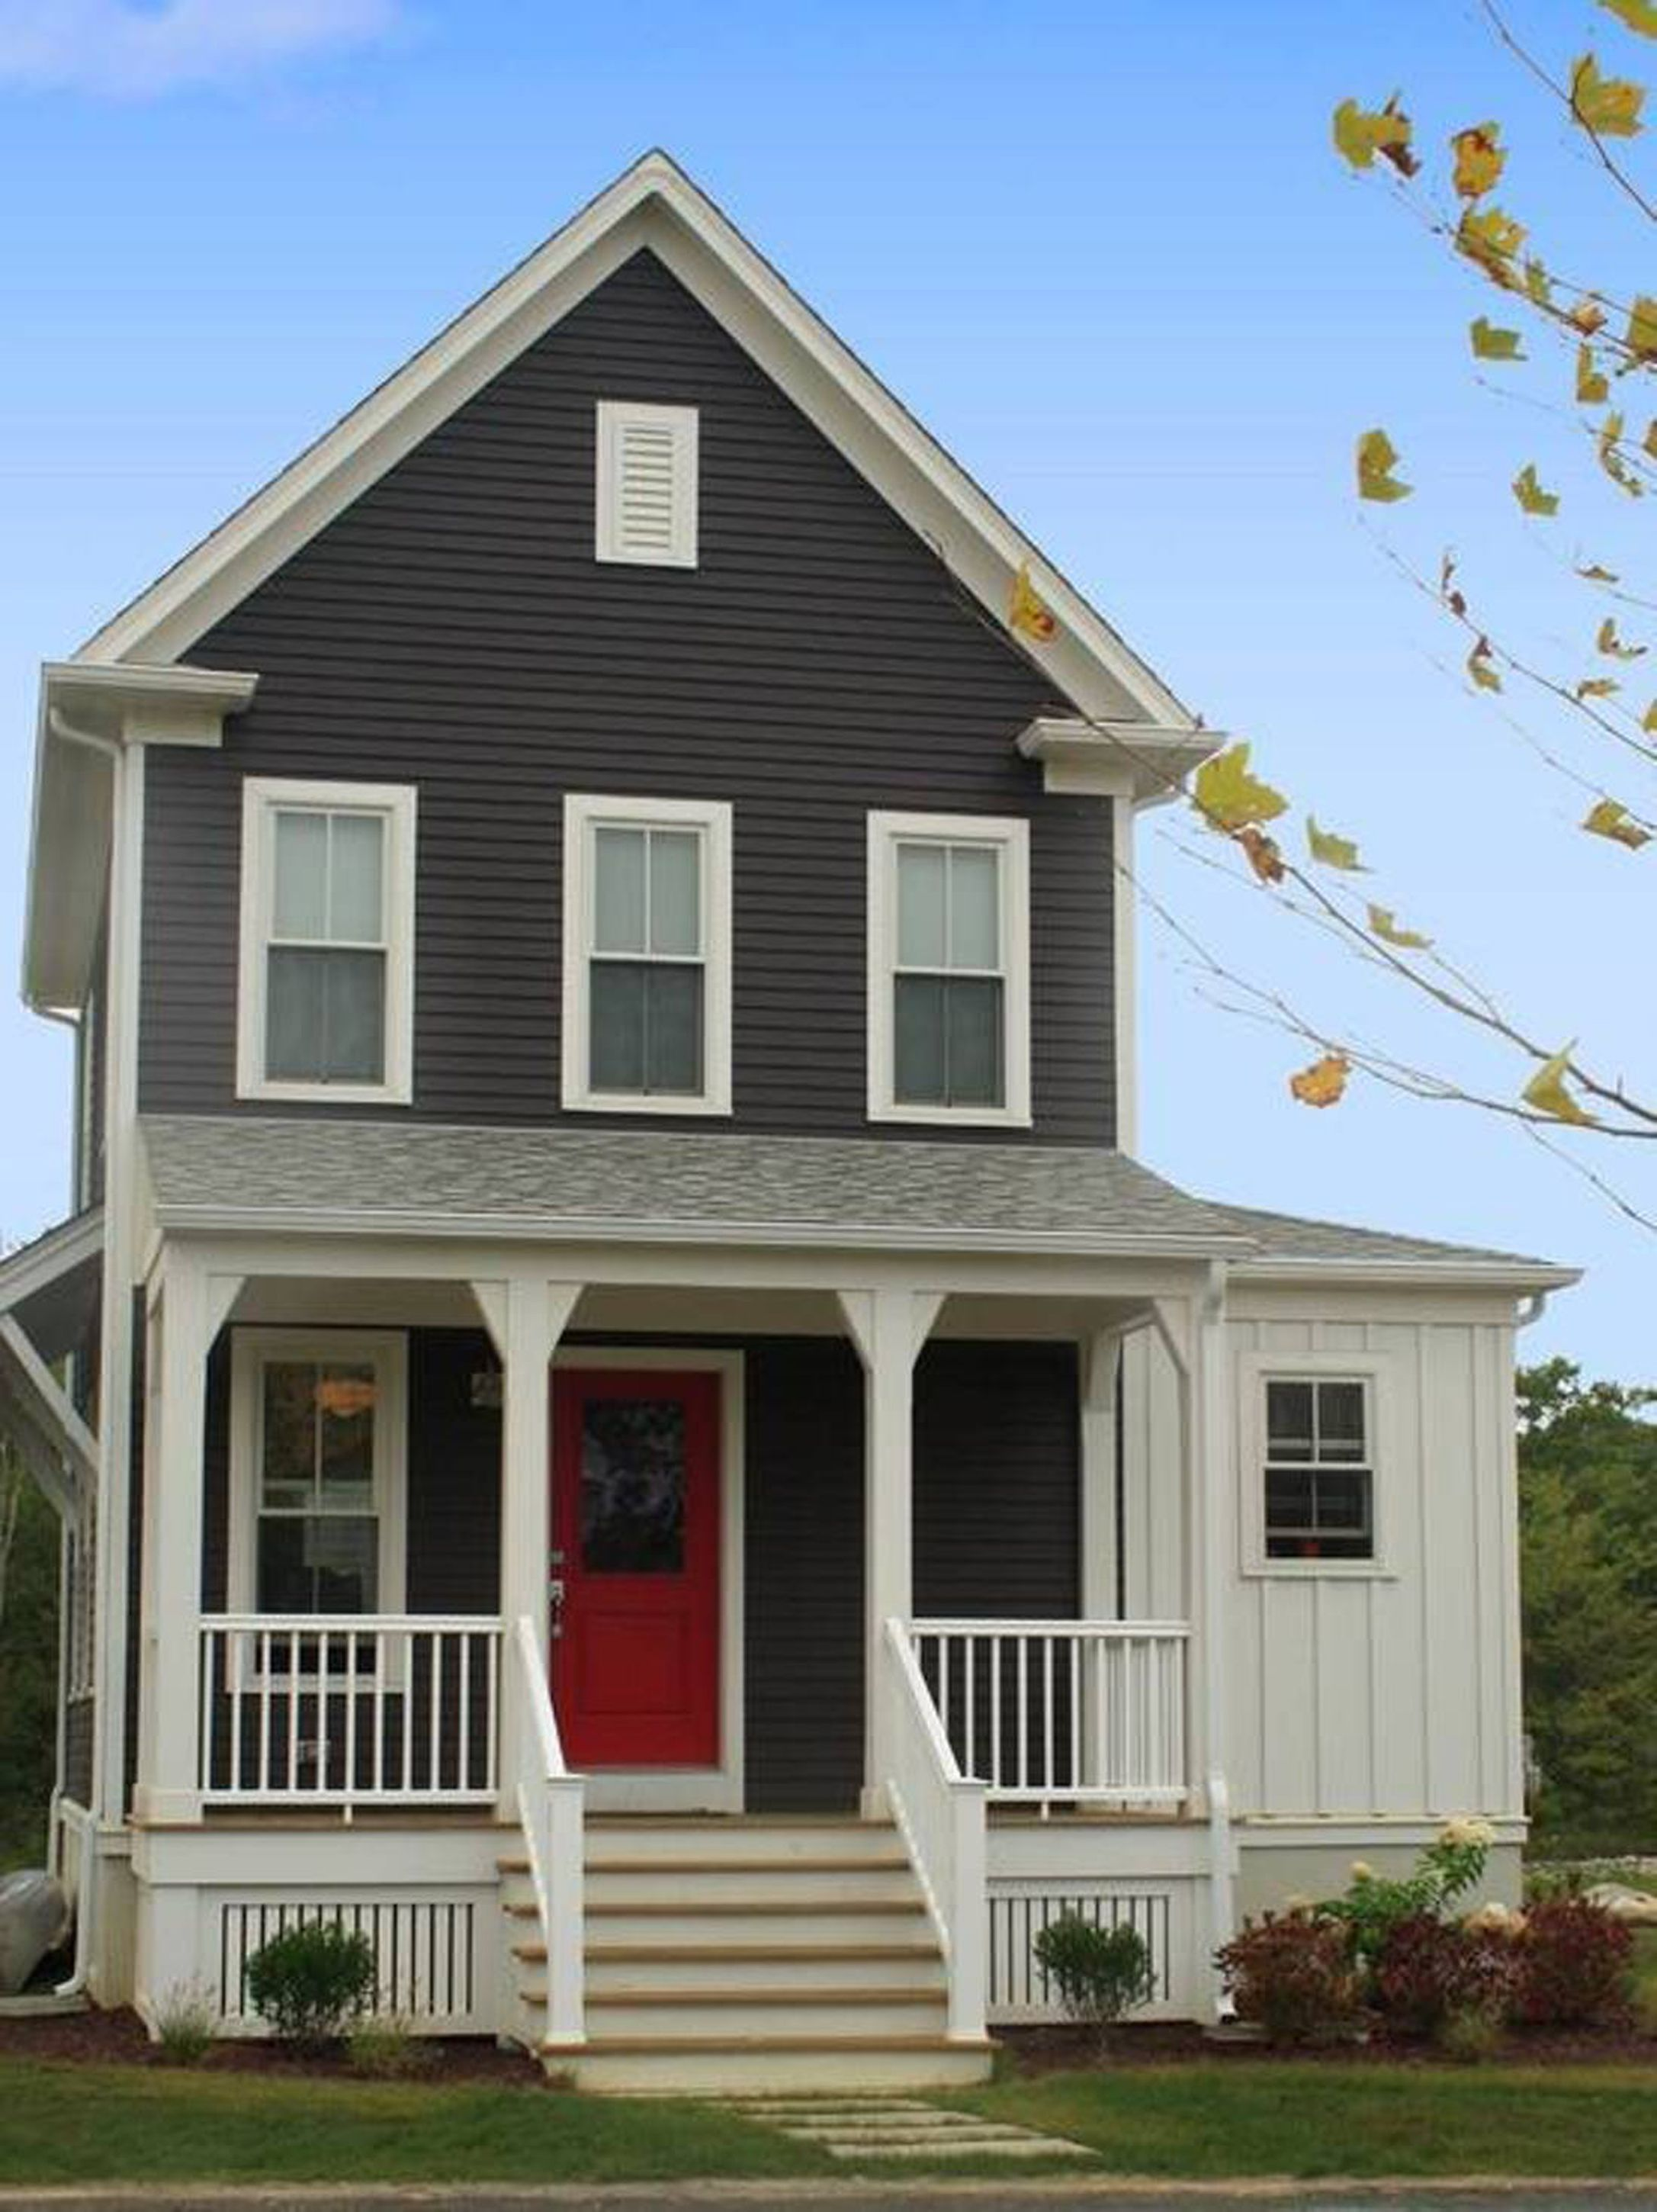 Delightful Gray House Exterior Paint Idea With White Window Frames Red Door A